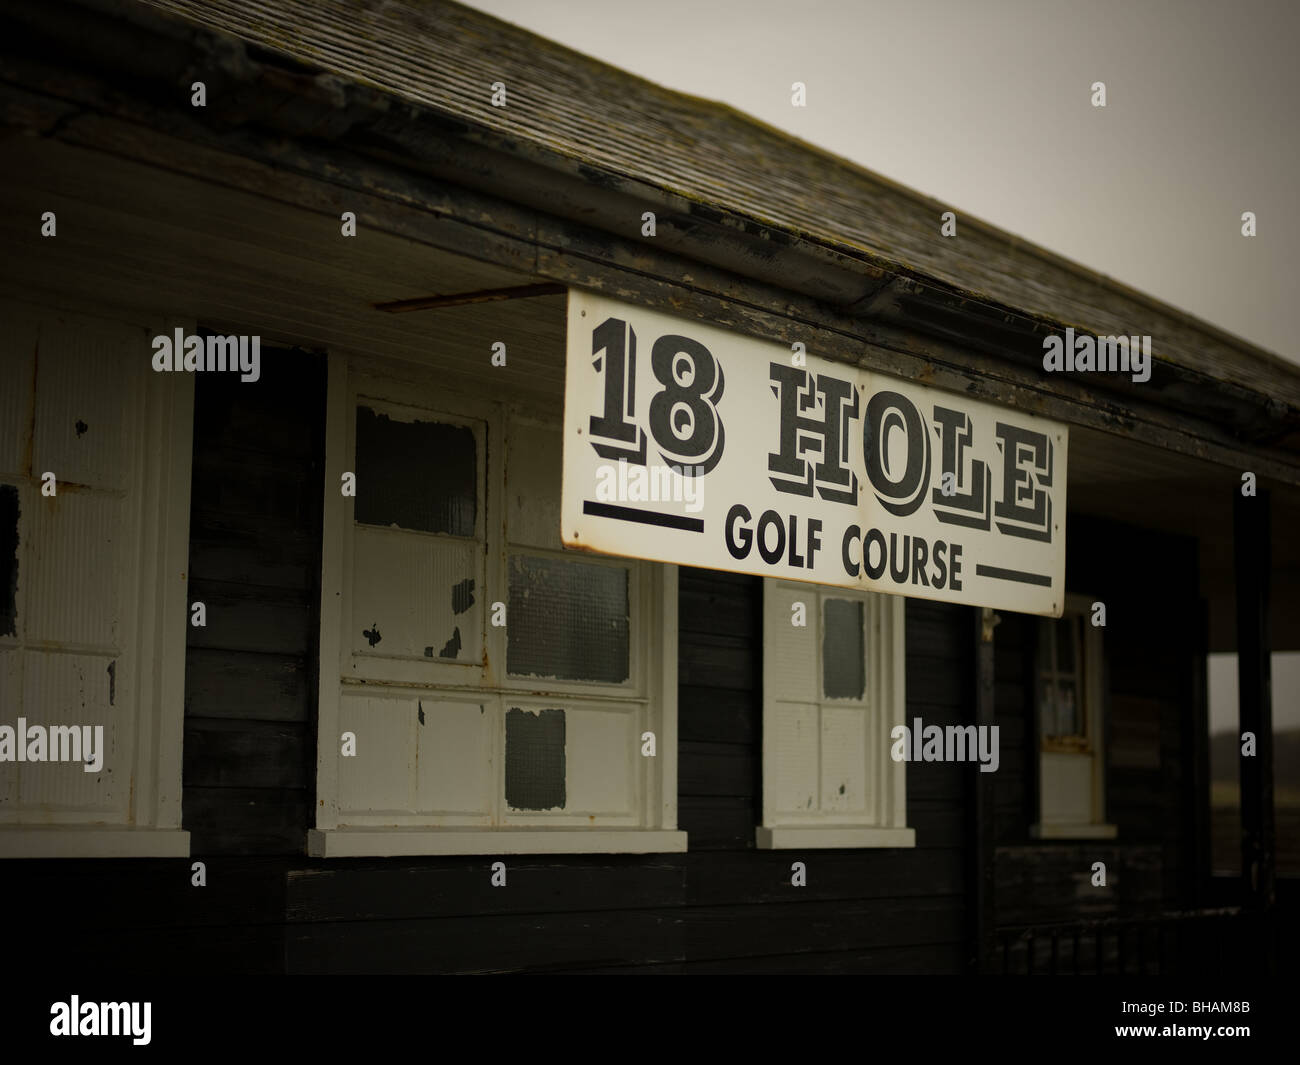 golf course, club house on pitch & putt course. - Stock Image